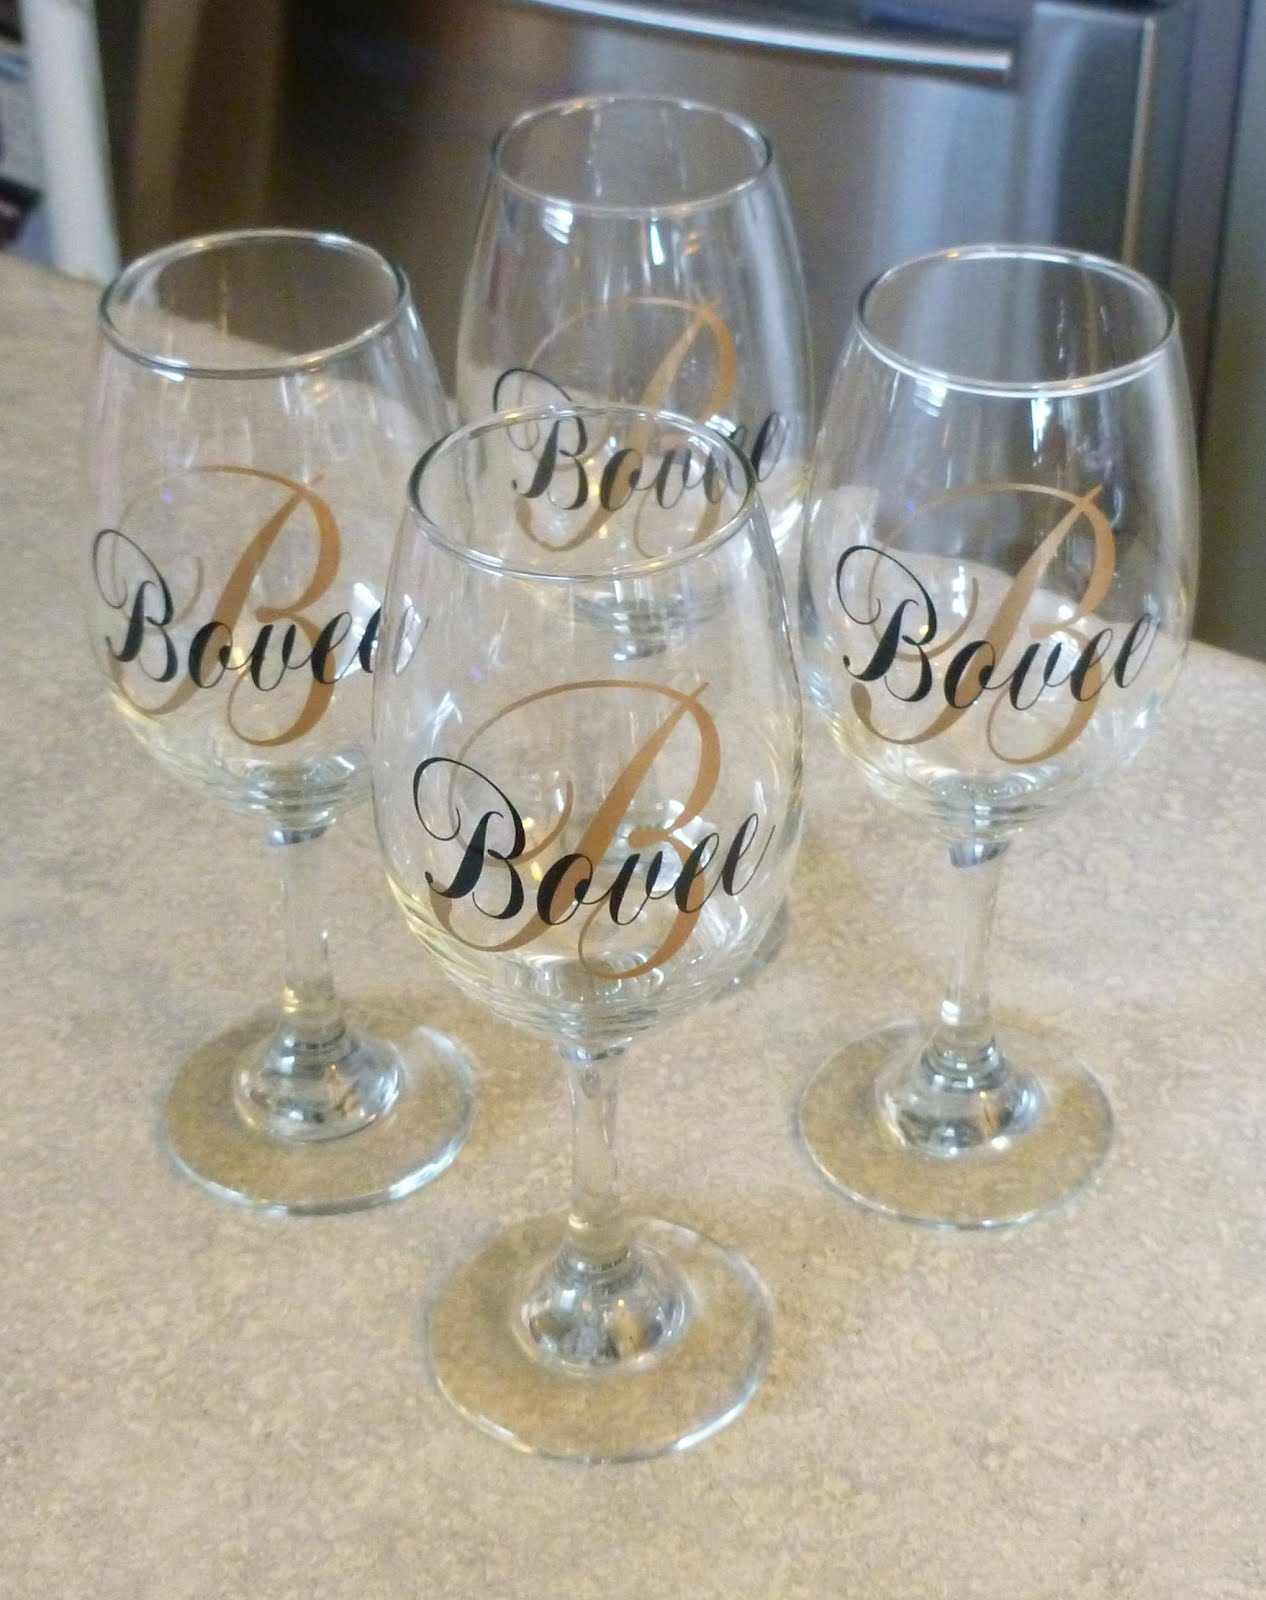 Cher S Signs By Design Personalized Wine Glasses